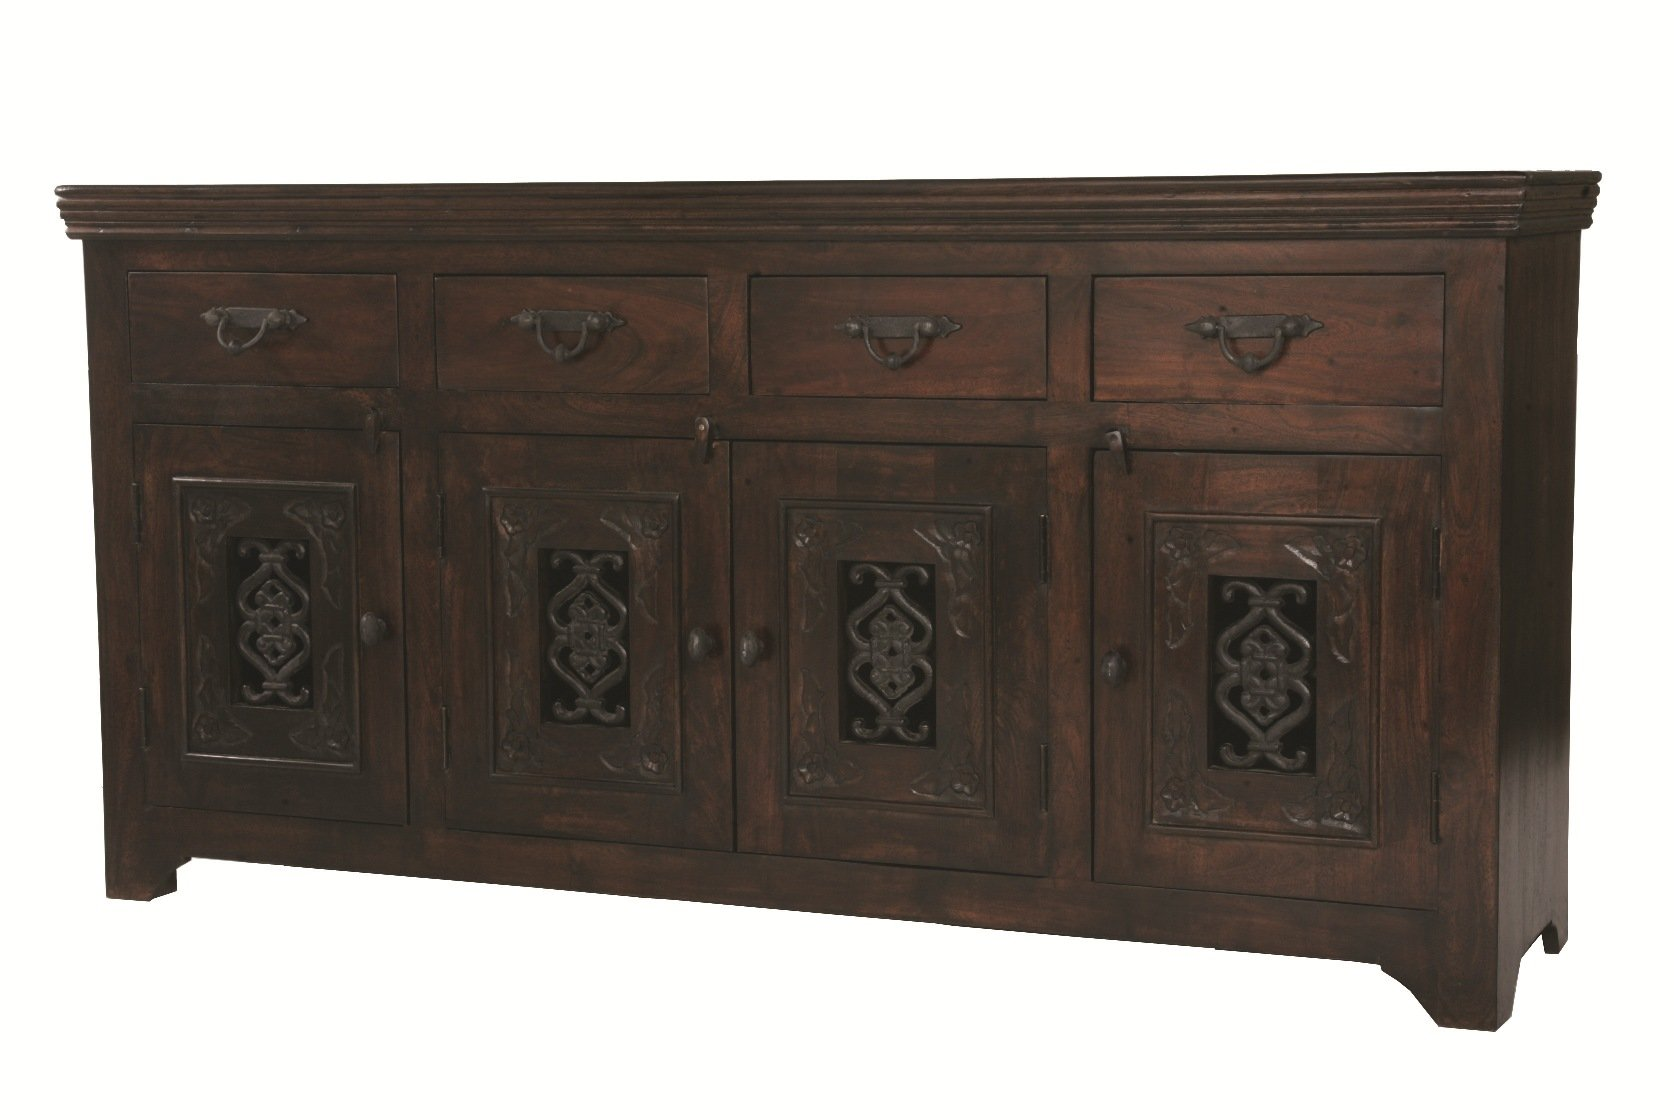 Moti Furniture Old World Design Durango Buffet with 4-Drawer and 4-Door